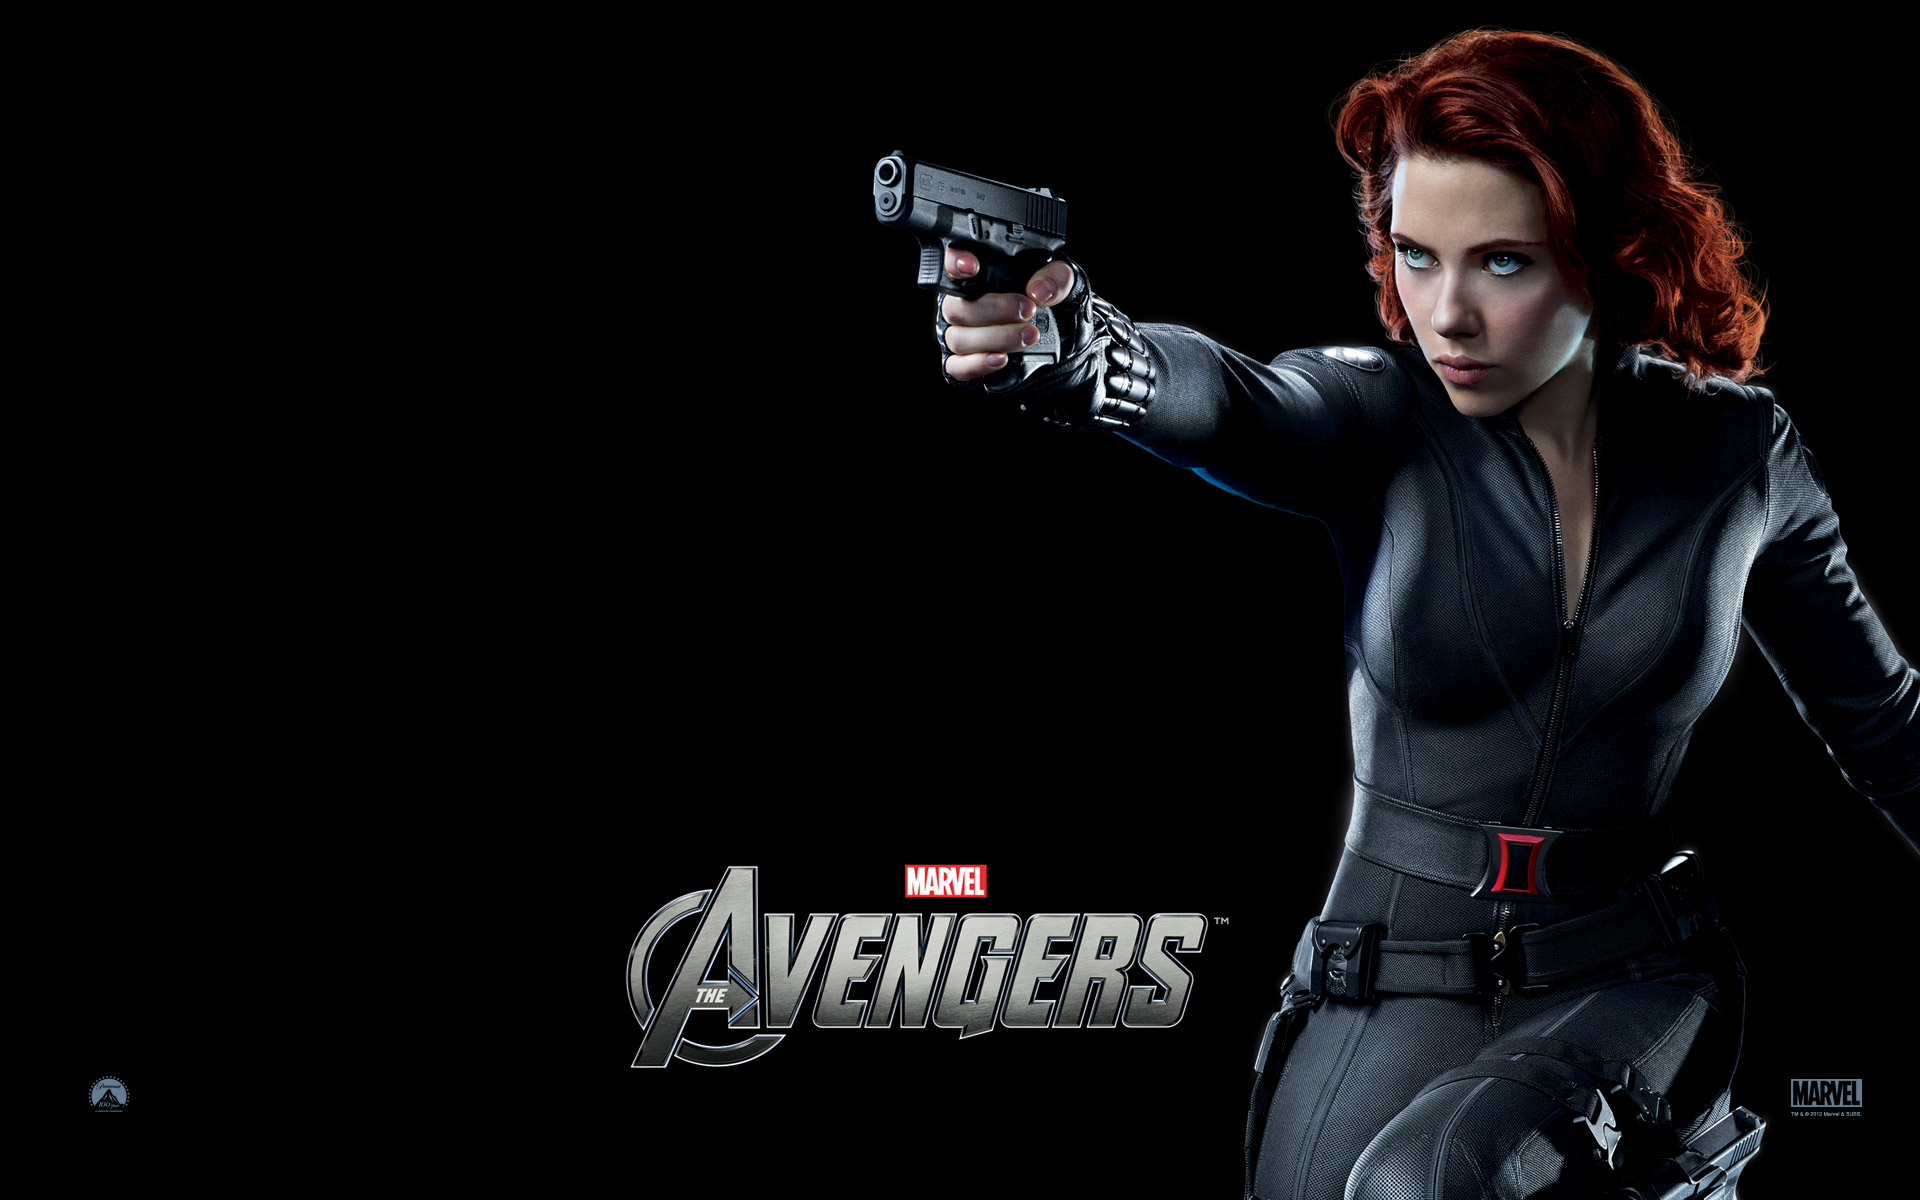 Hd Wallpapers Black Widow 1280 X 800 219 Kb Jpeg HD Wallpapers   100 1920x1200